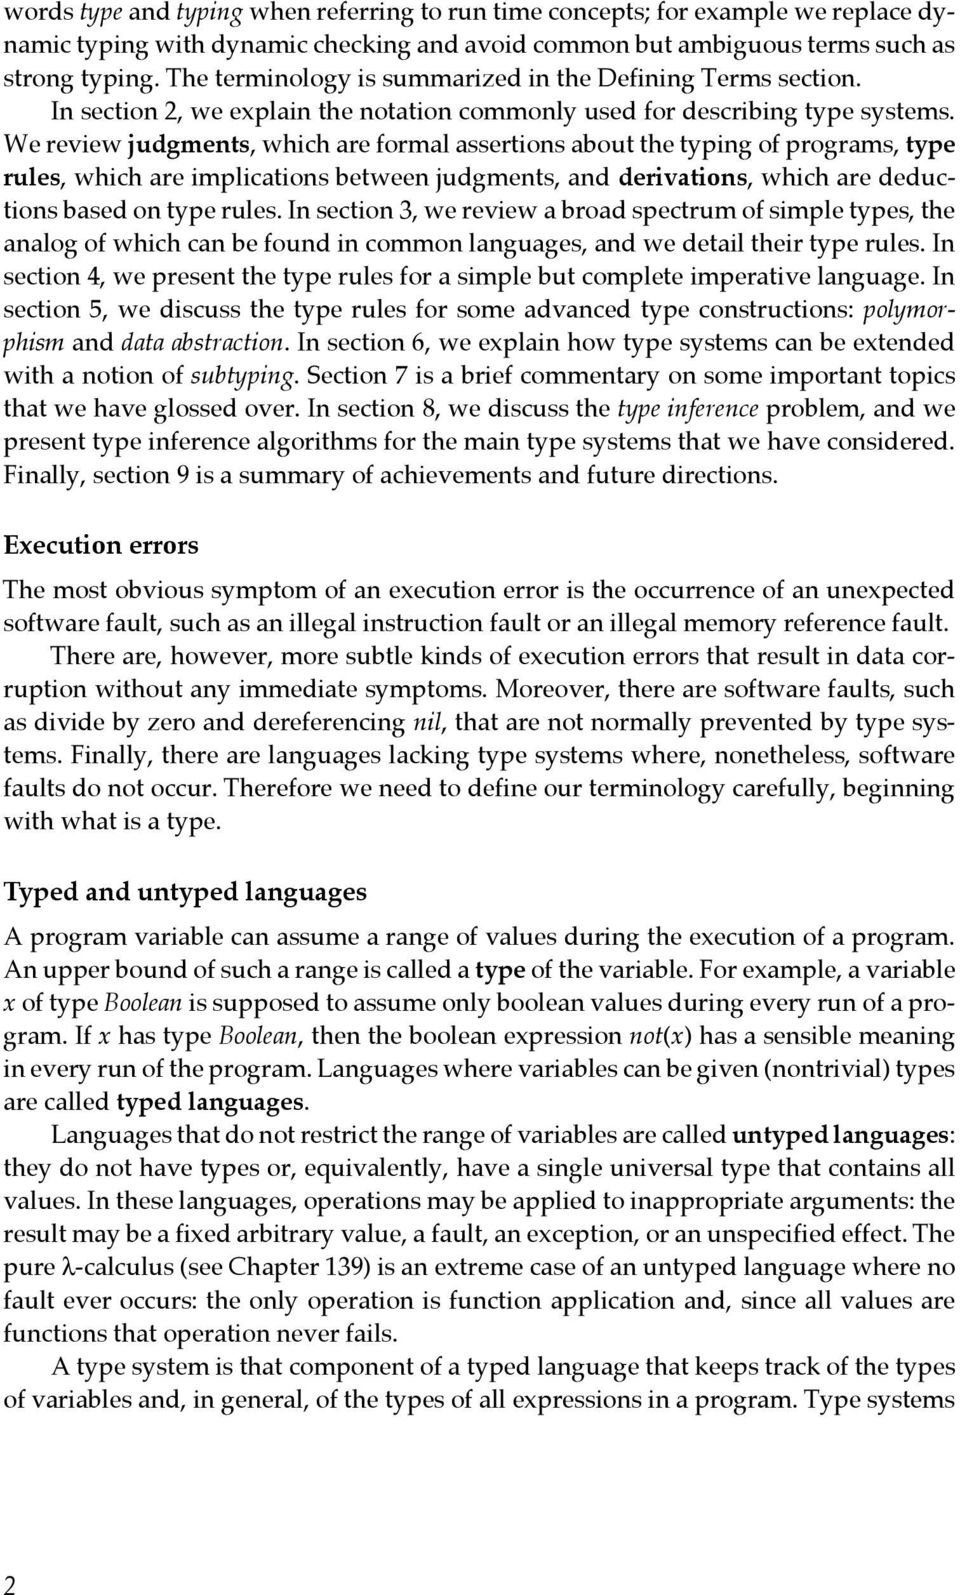 We review judgments, which are formal assertions about the typing of programs, type rules, which are implications between judgments, and derivations, which are deductions based on type rules.